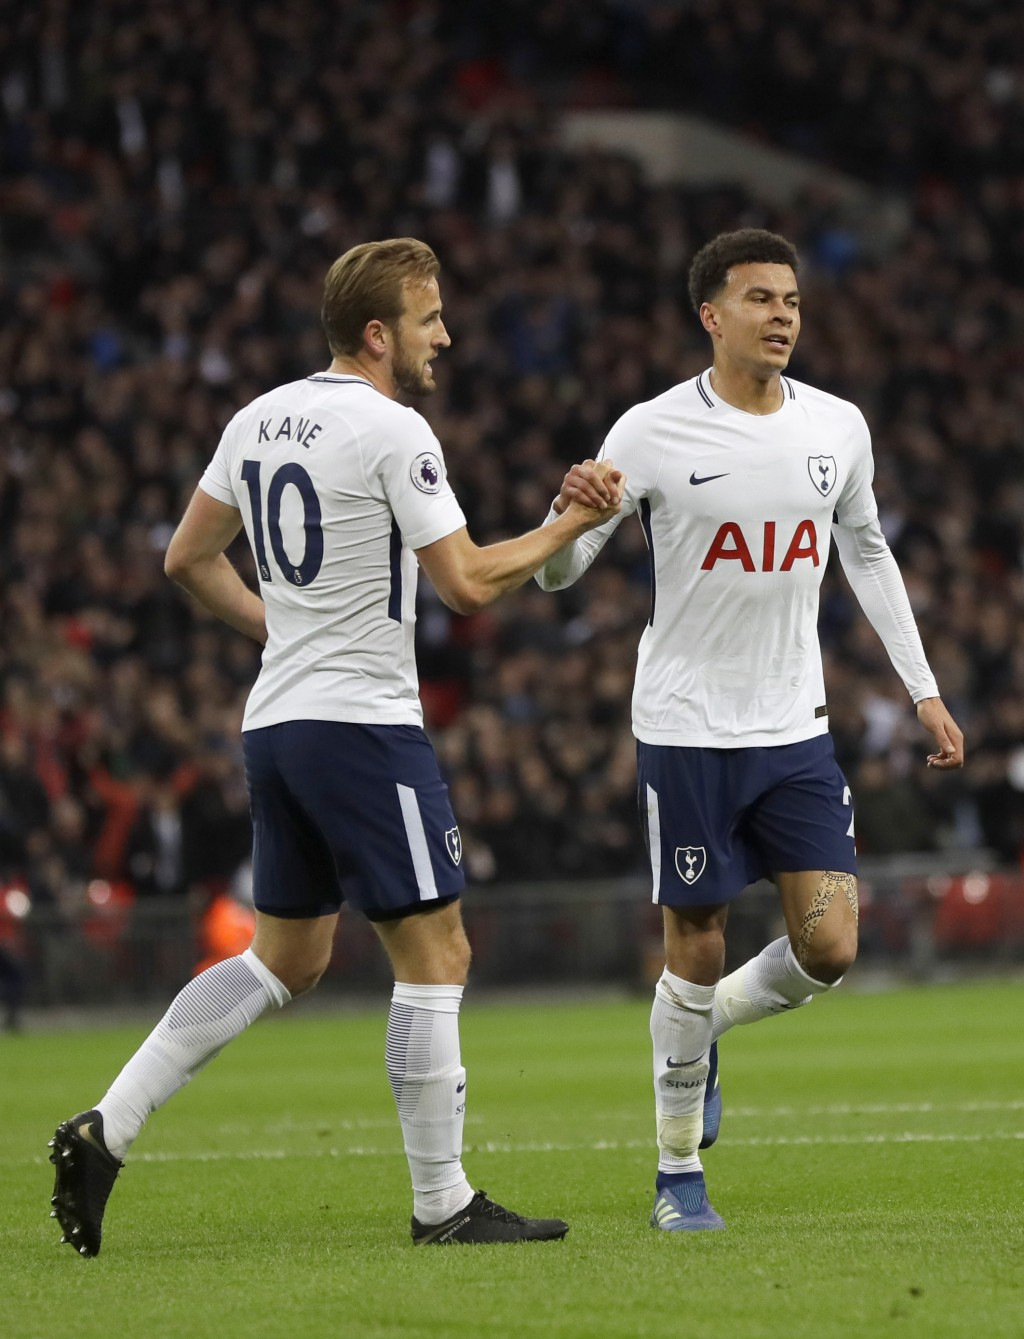 Tottenham's Dele Alli celebrates scoring a goal with Tottenham's Harry Kane during the English Premier League soccer match between Tottenham Hotspur a...